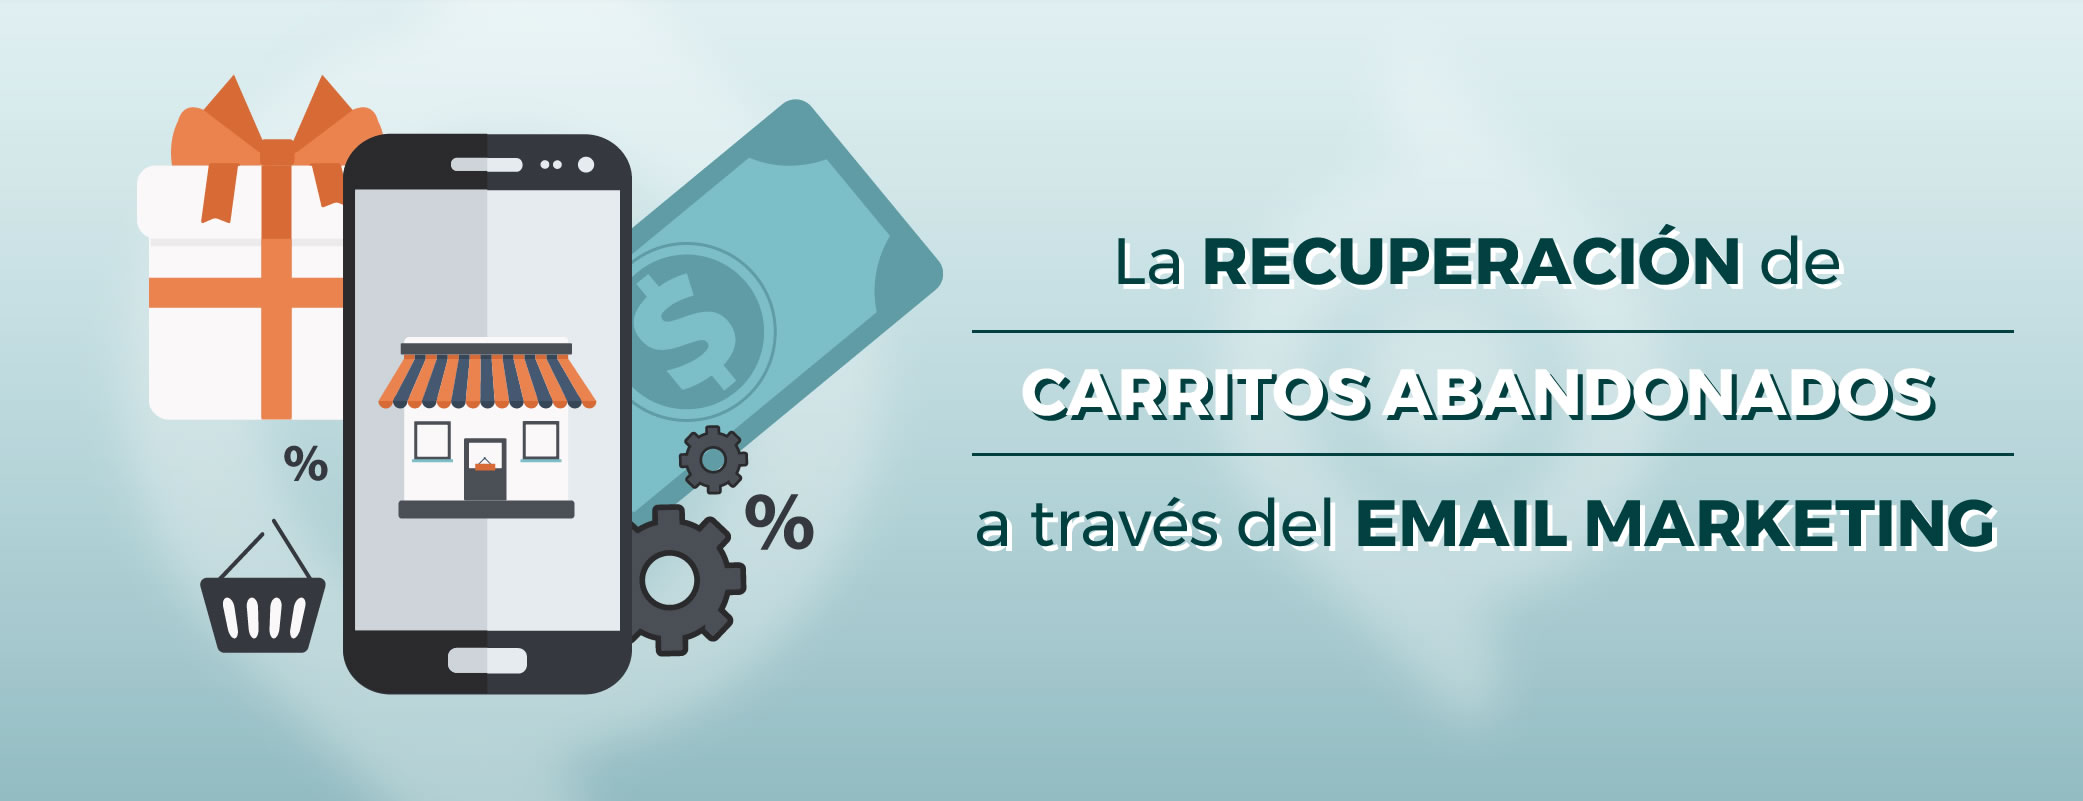 La recuperación de carritos abandonados a través del email marketing